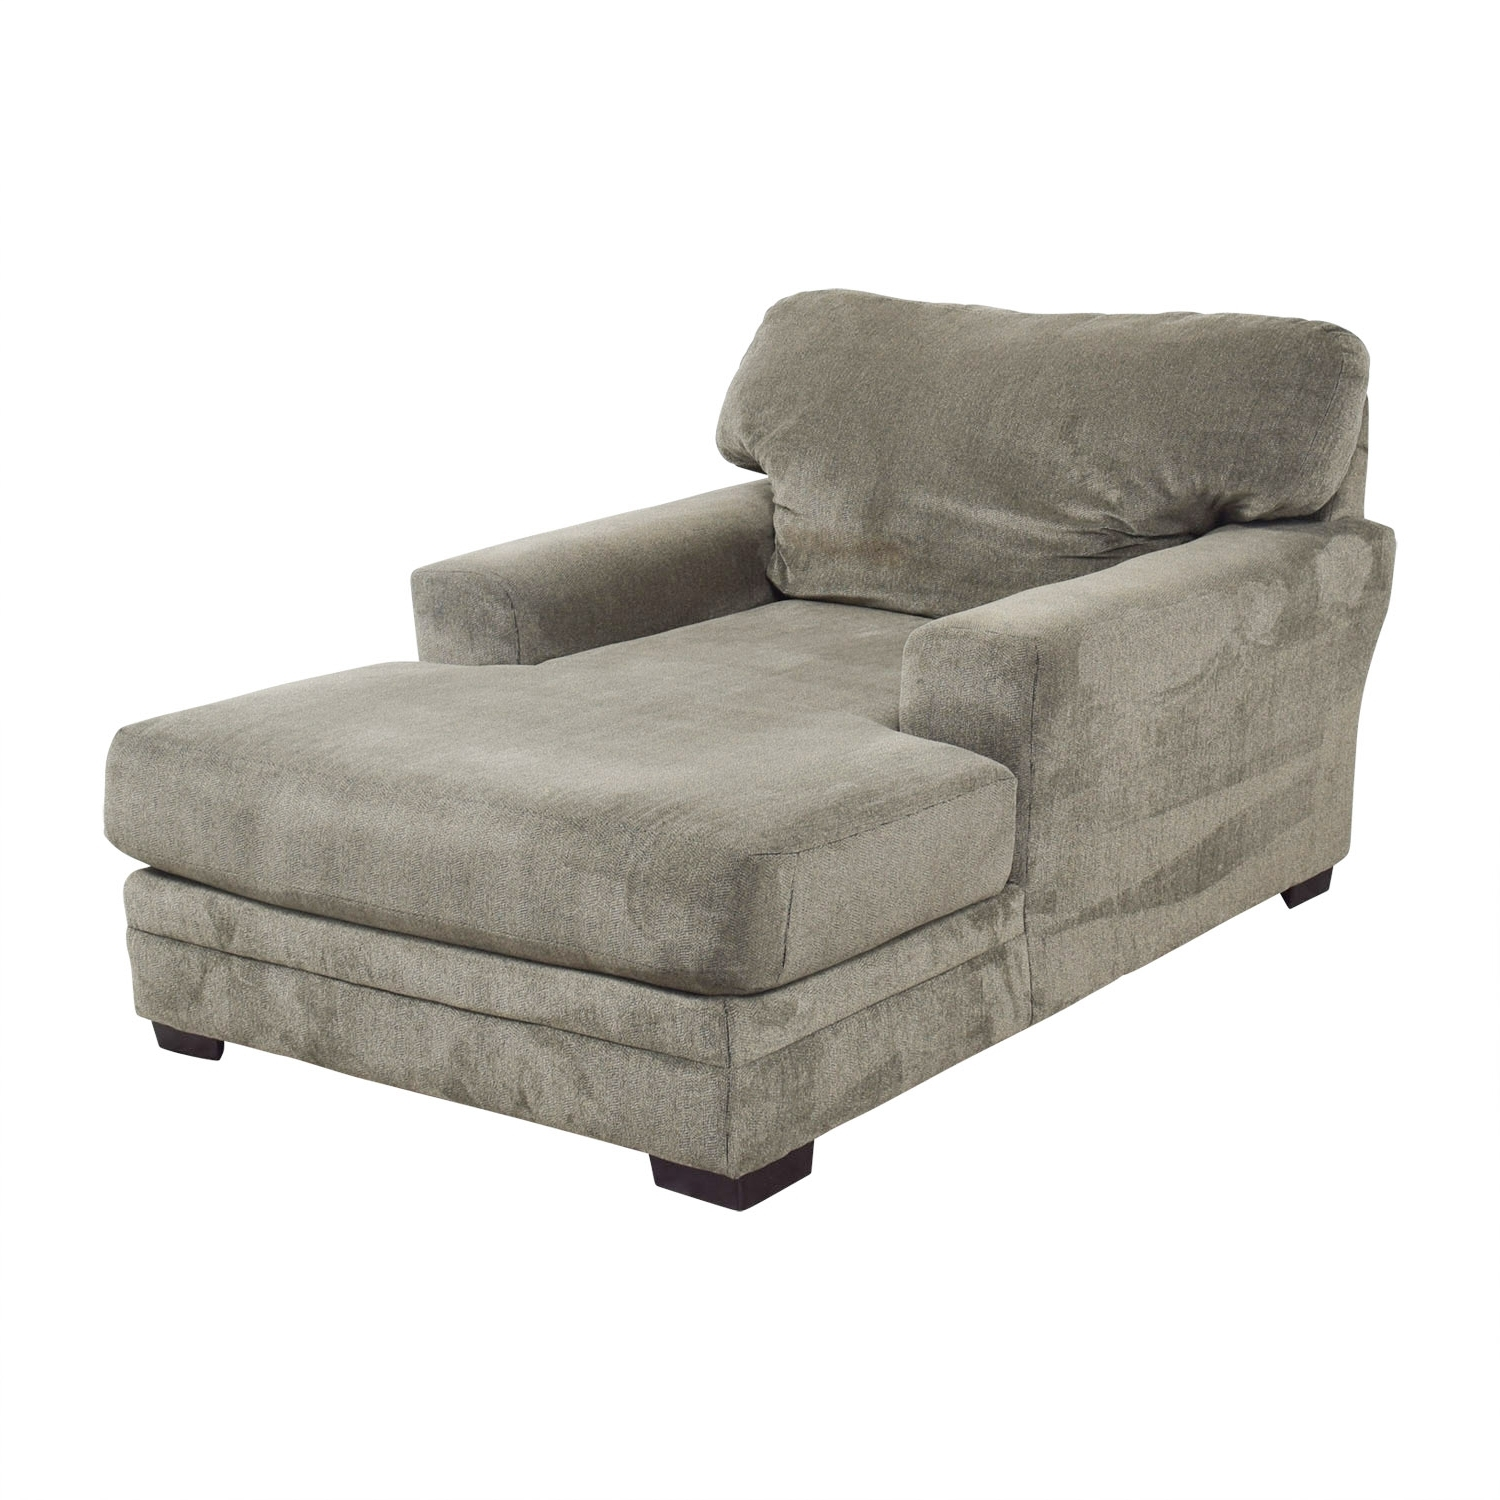 Chaise Lounge Benchs For Preferred Chaise Lounge Chair Bobs Furniture • Lounge Chairs Ideas (View 3 of 15)